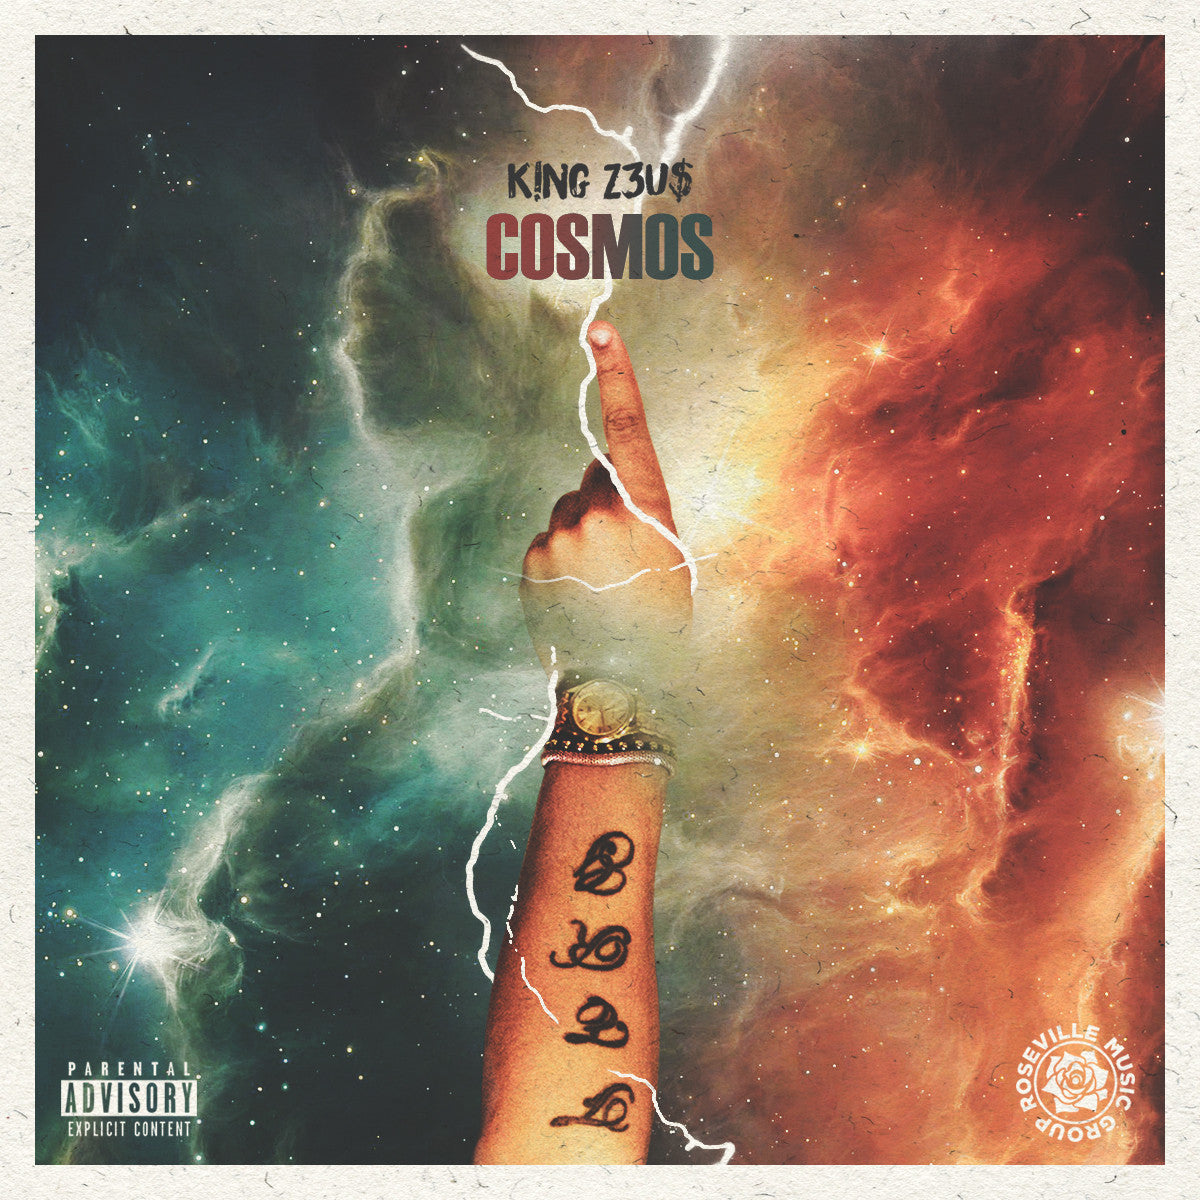 SINGLE - King Z3us - Cosmos